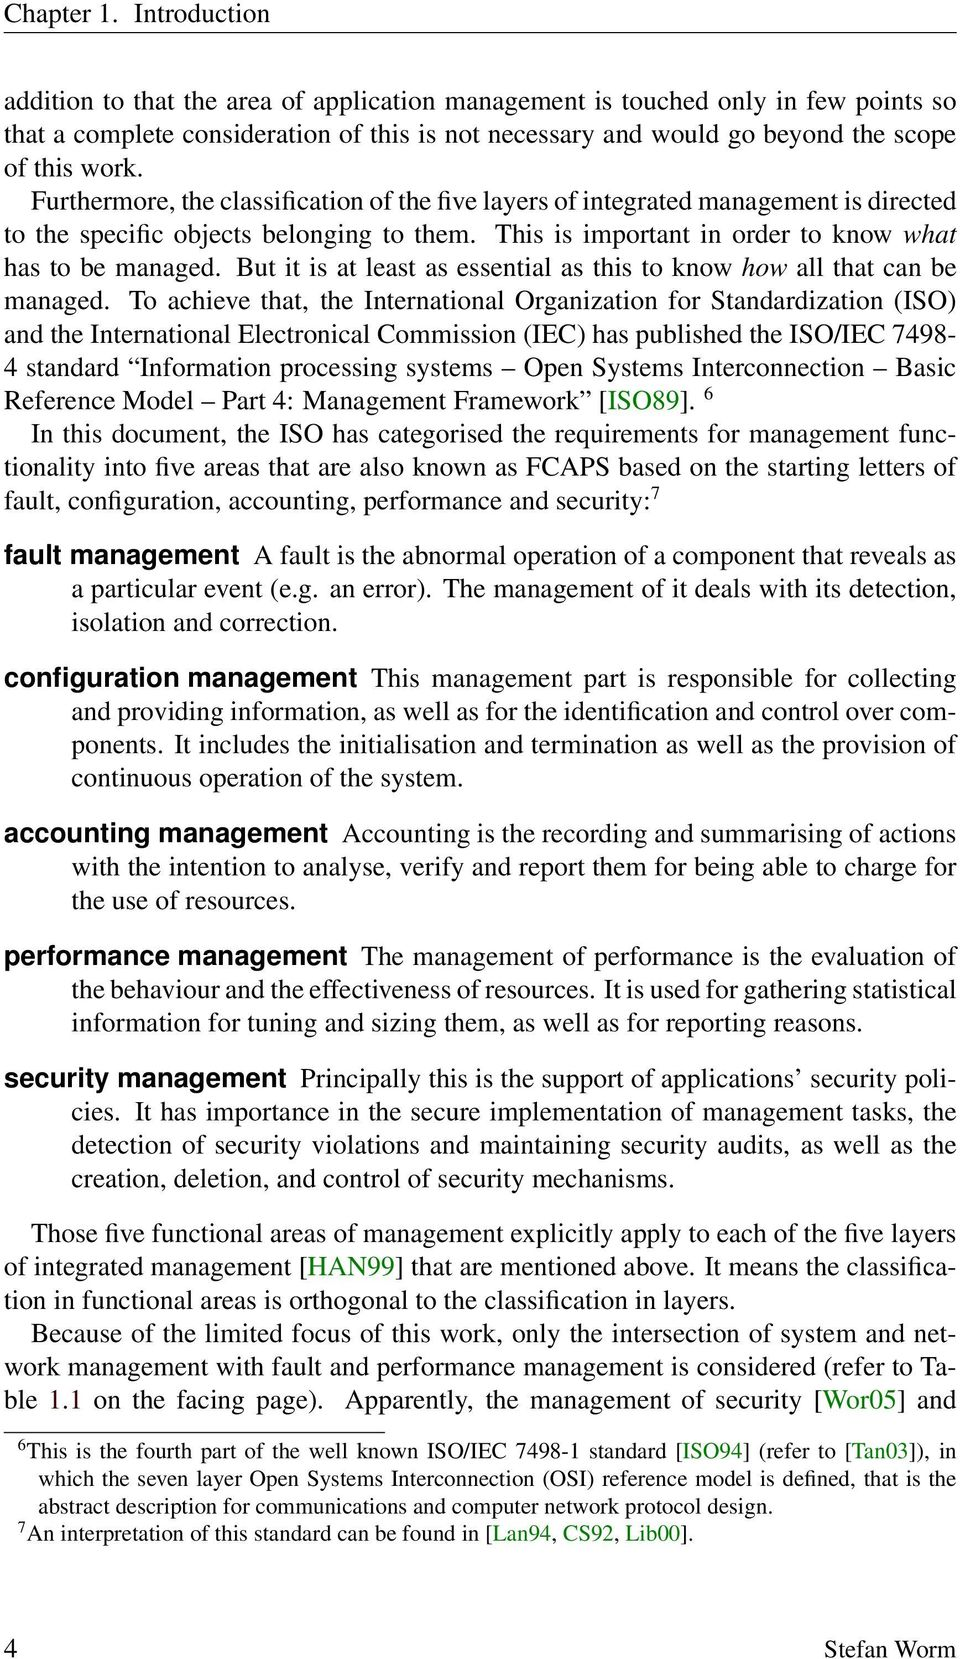 Furthermore, the classification of the five layers of integrated management is directed to the specific objects belonging to them. This is important in order to know what has to be managed.